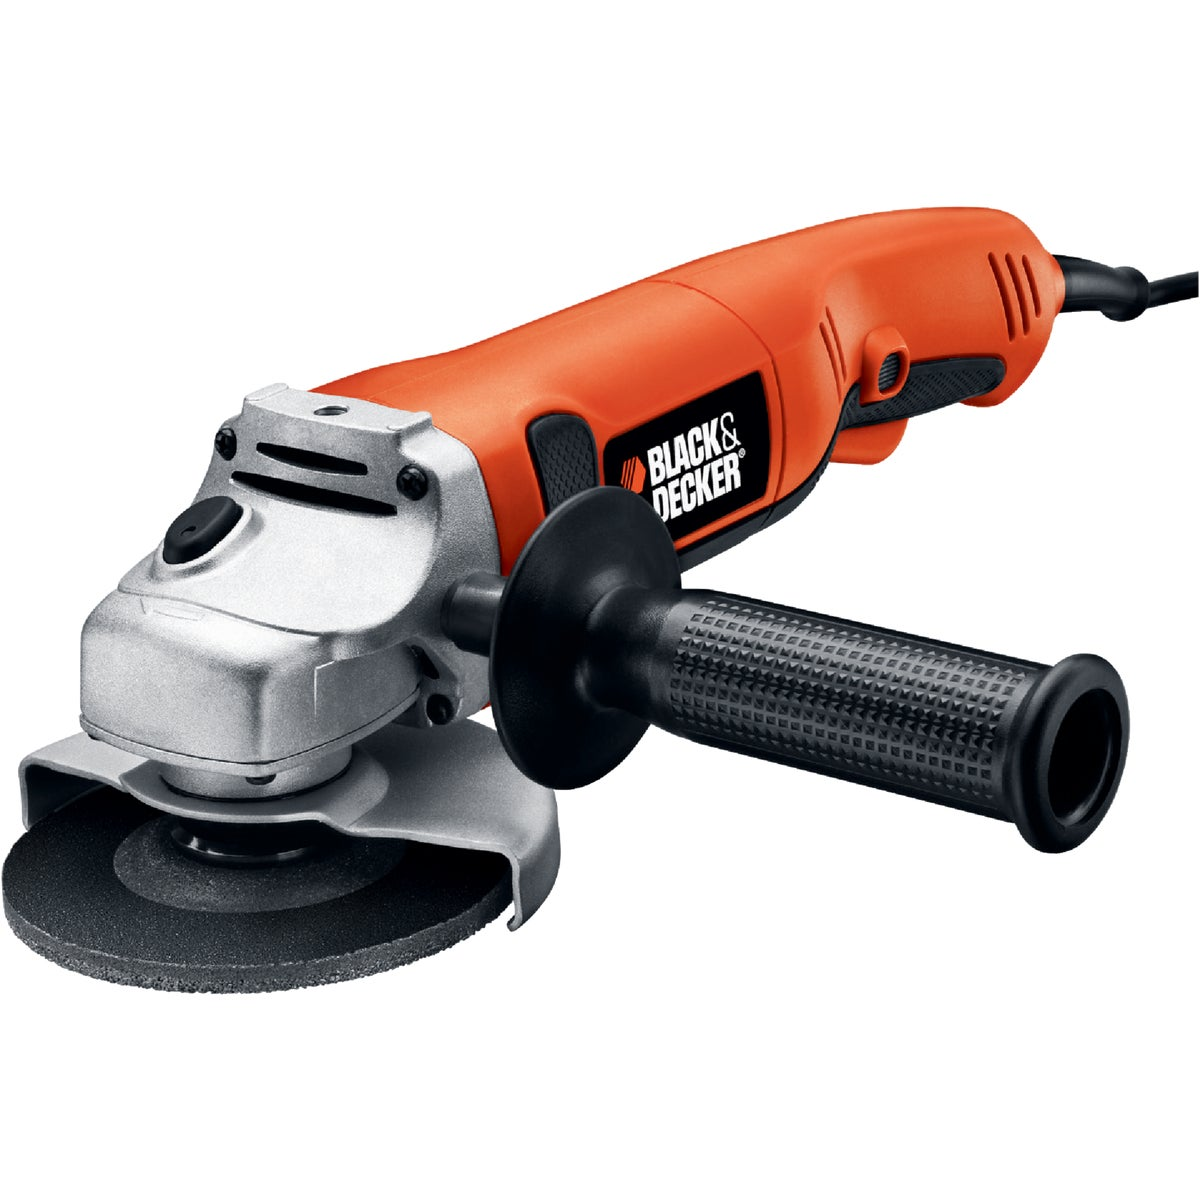 "4-1/2""6.5A ANGLE GRINDER"